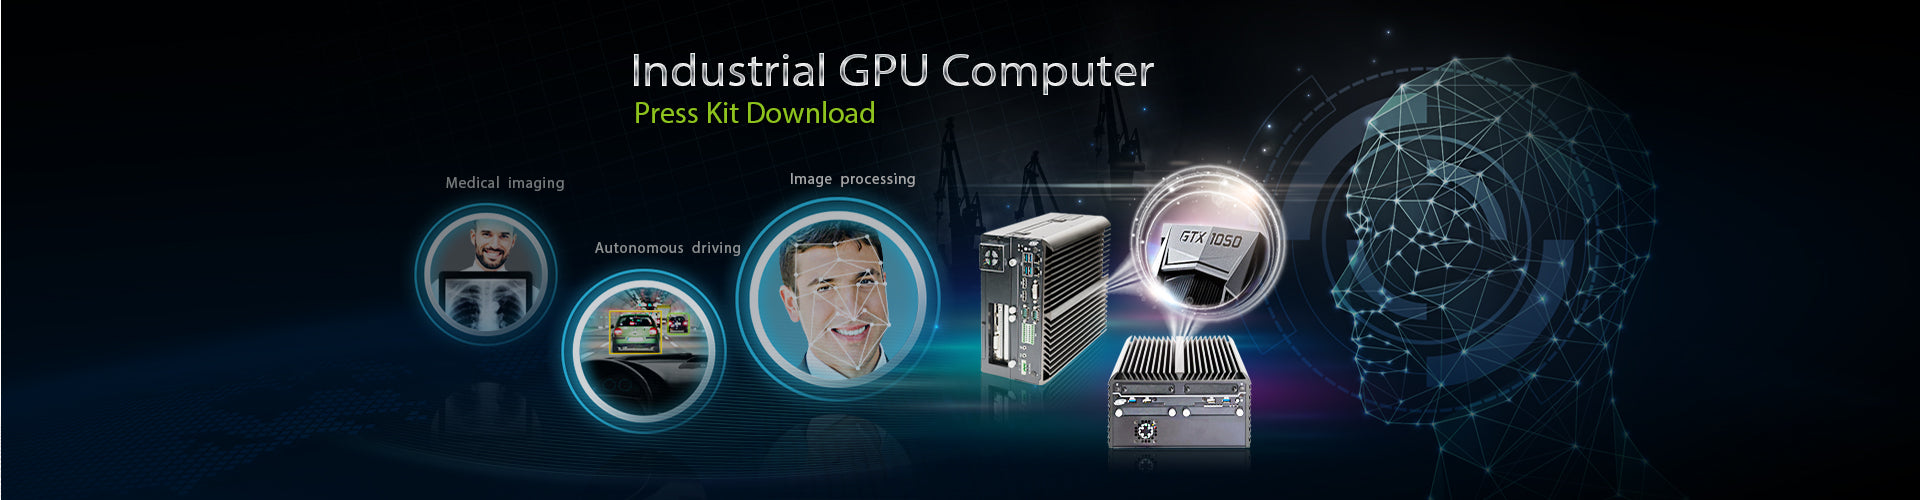 Industrial GPU Computer Download